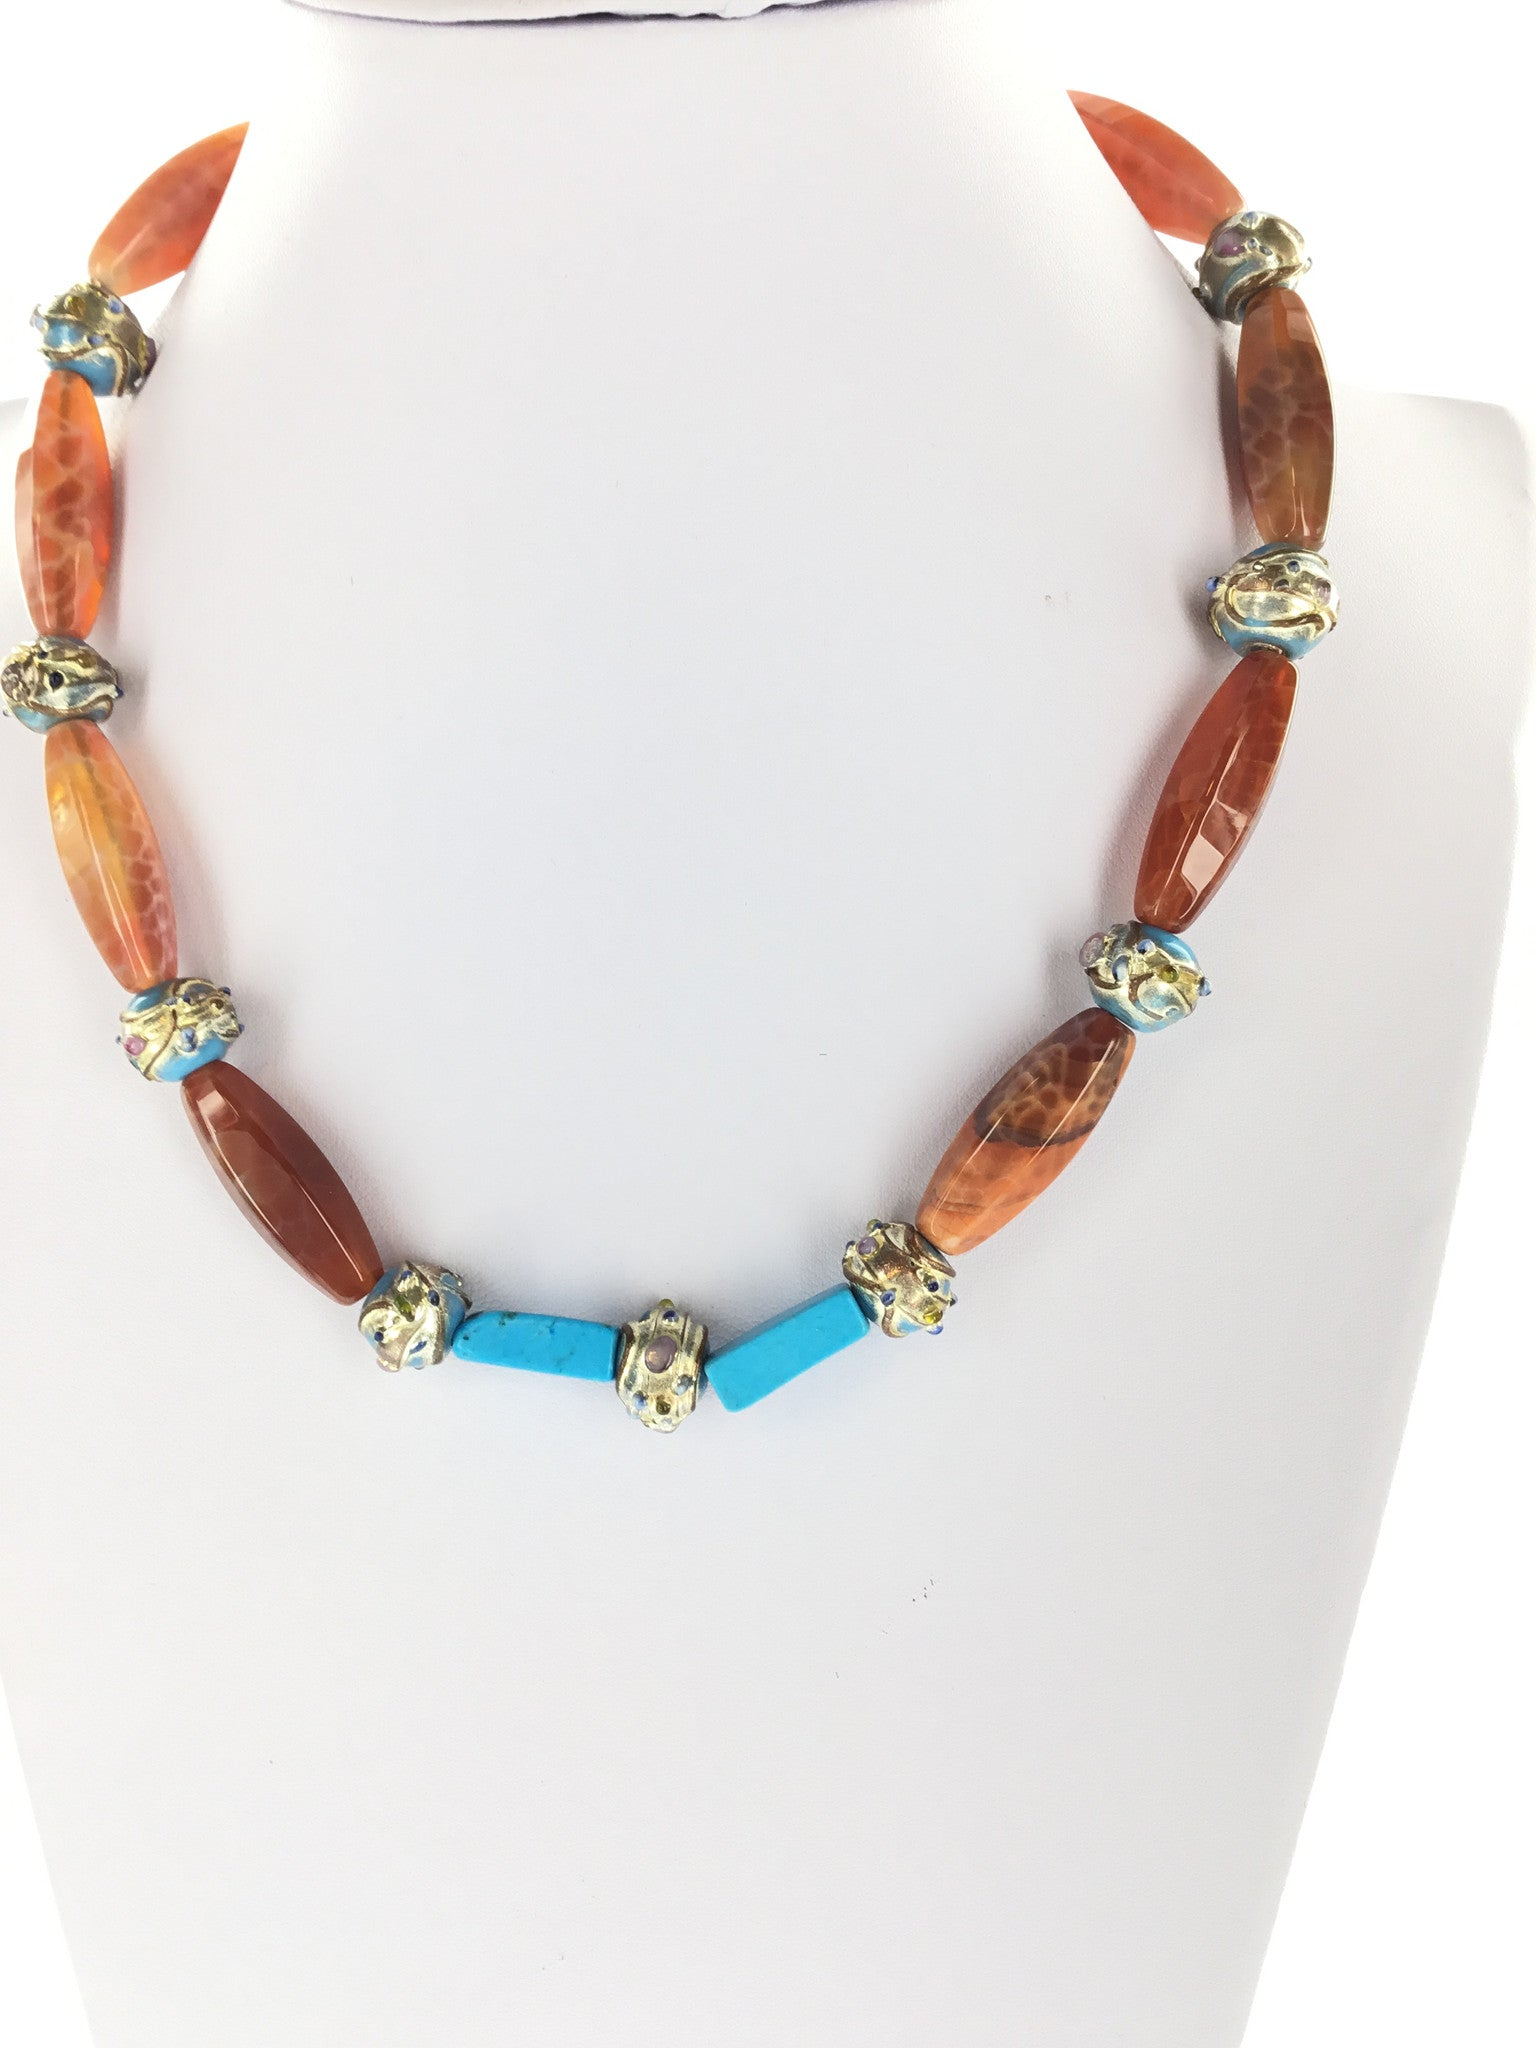 Red Fire Agate Necklace - Real Chic Boutique  - 4